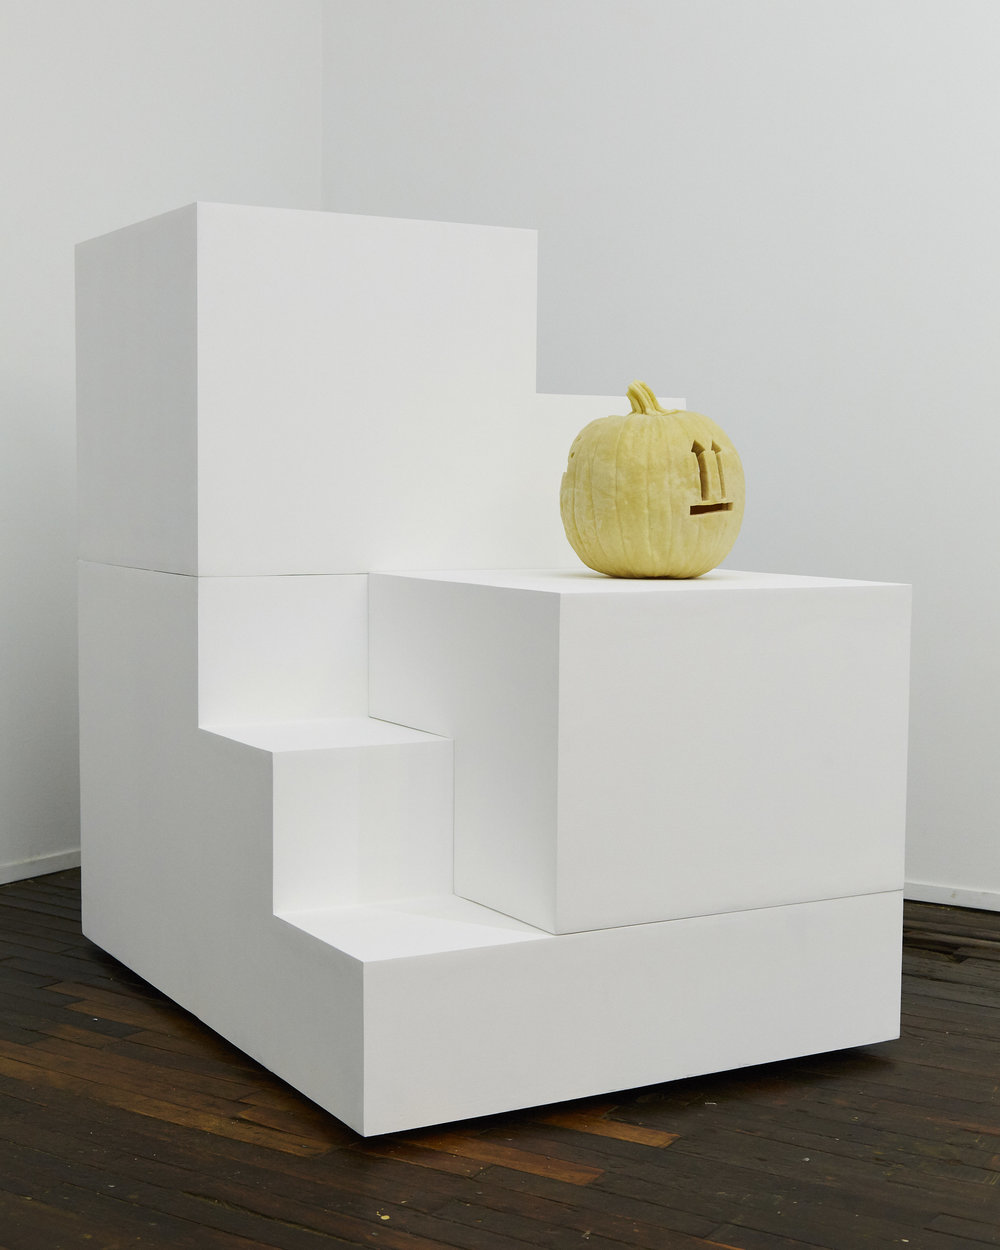 Jonathan Santoro,  Box , Cast urethane foam, MDF, Latex Paint, 2017